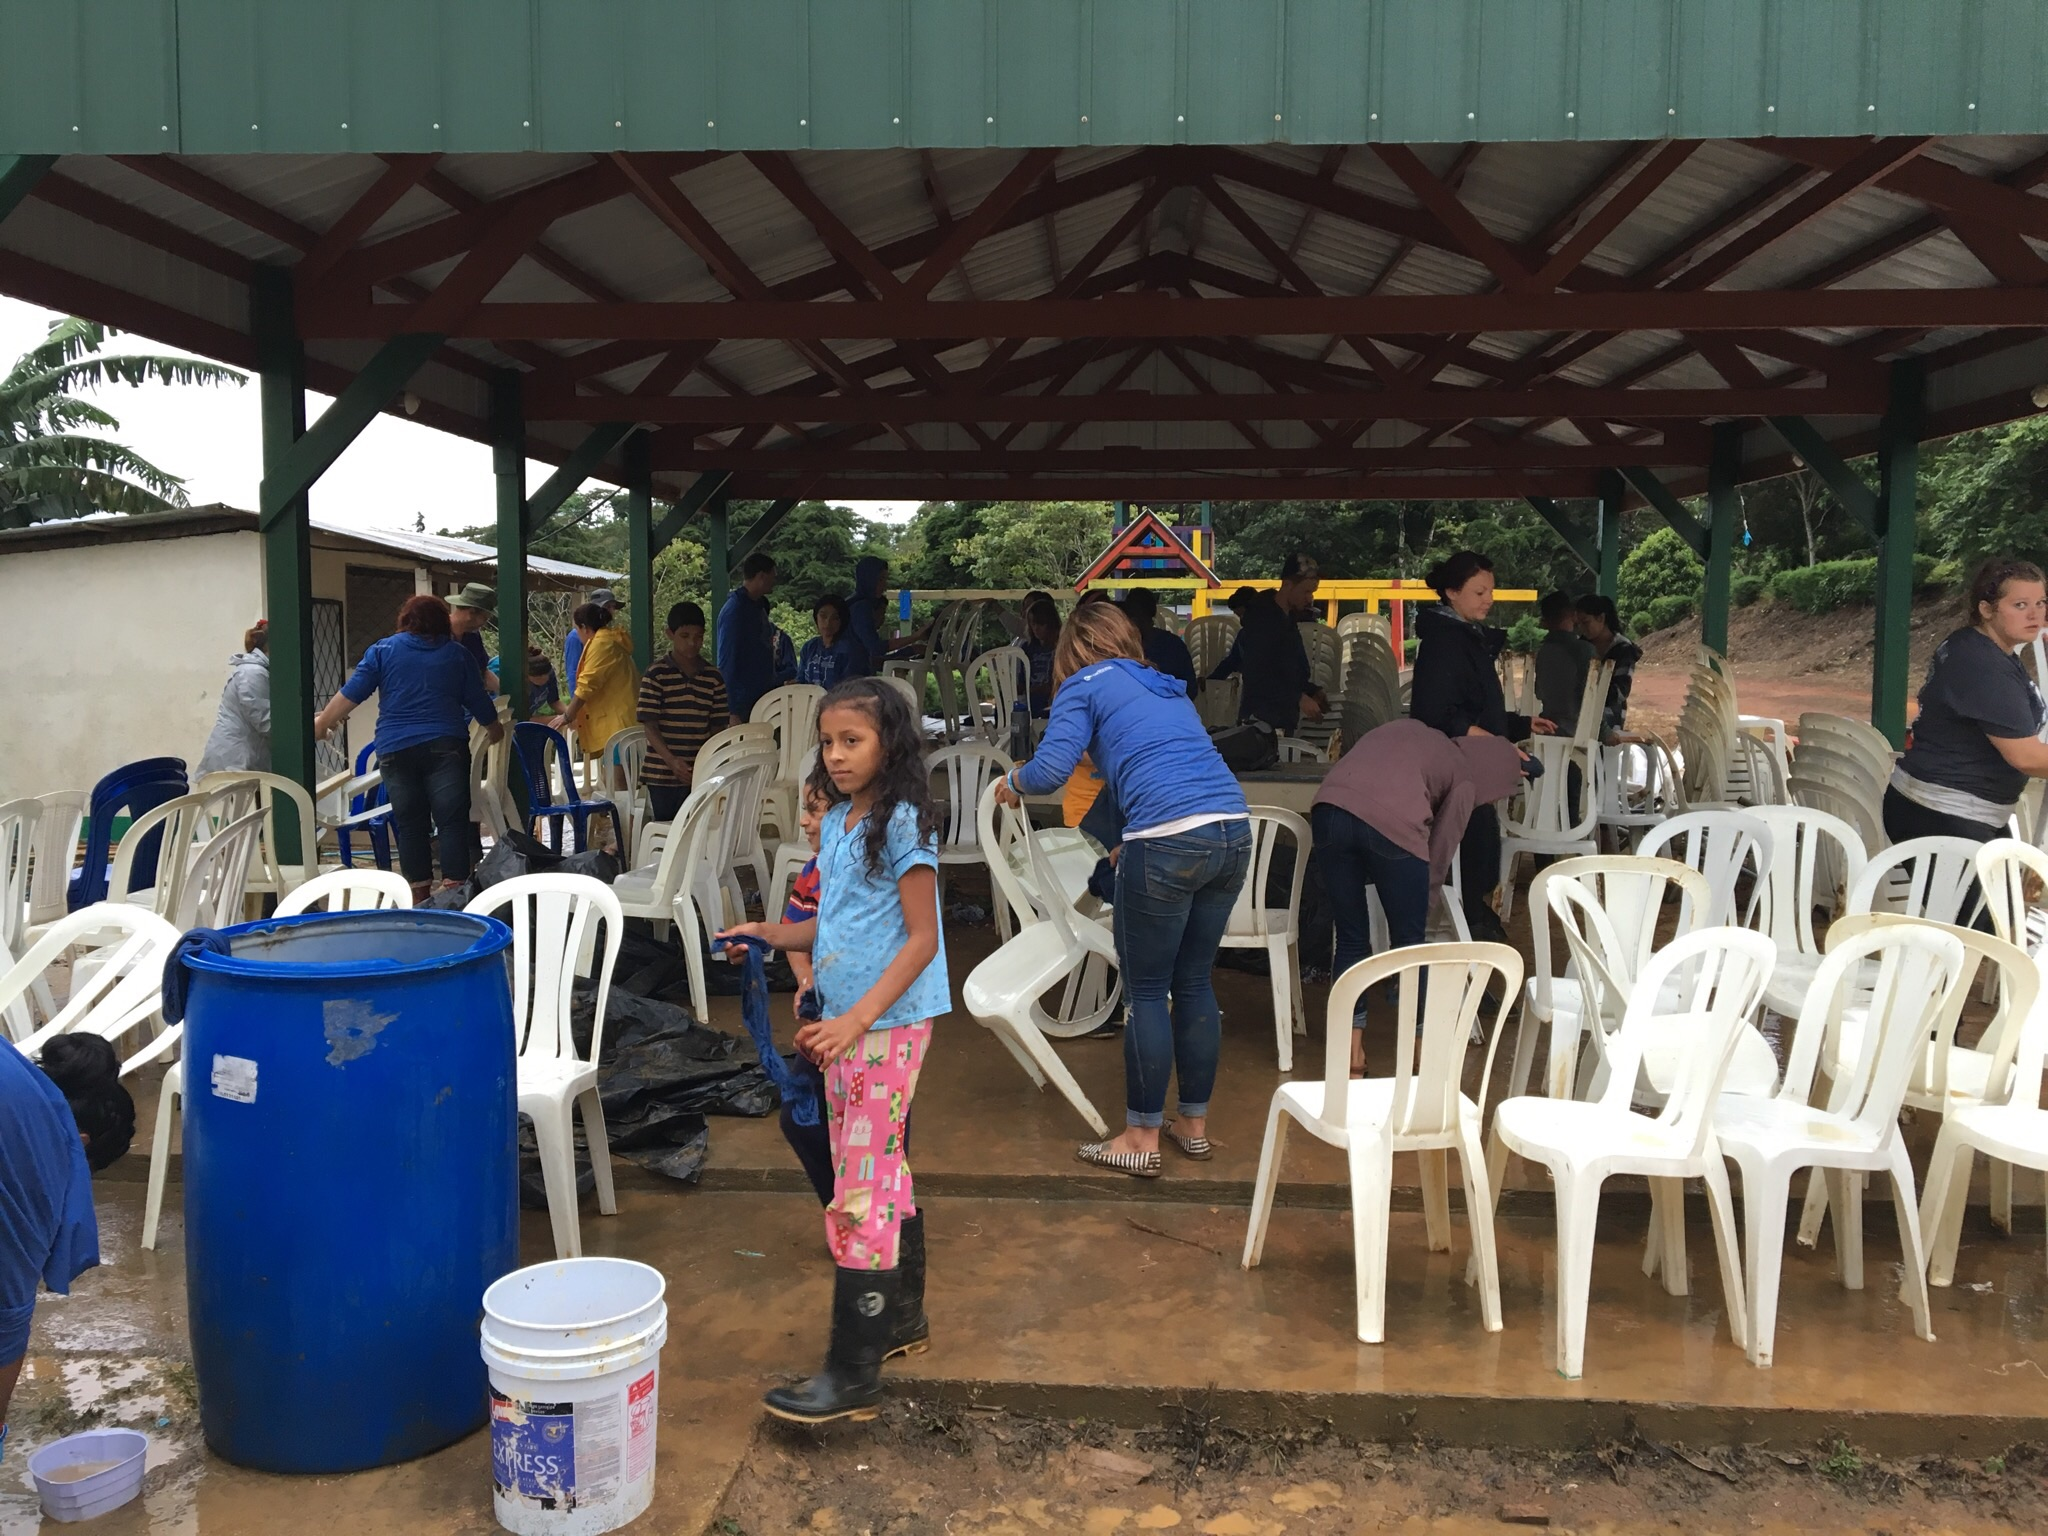 The Fox River team is an amazing group of servants. Their final difficult chore was to clean all the mud off the rental chairs so they could be returned.